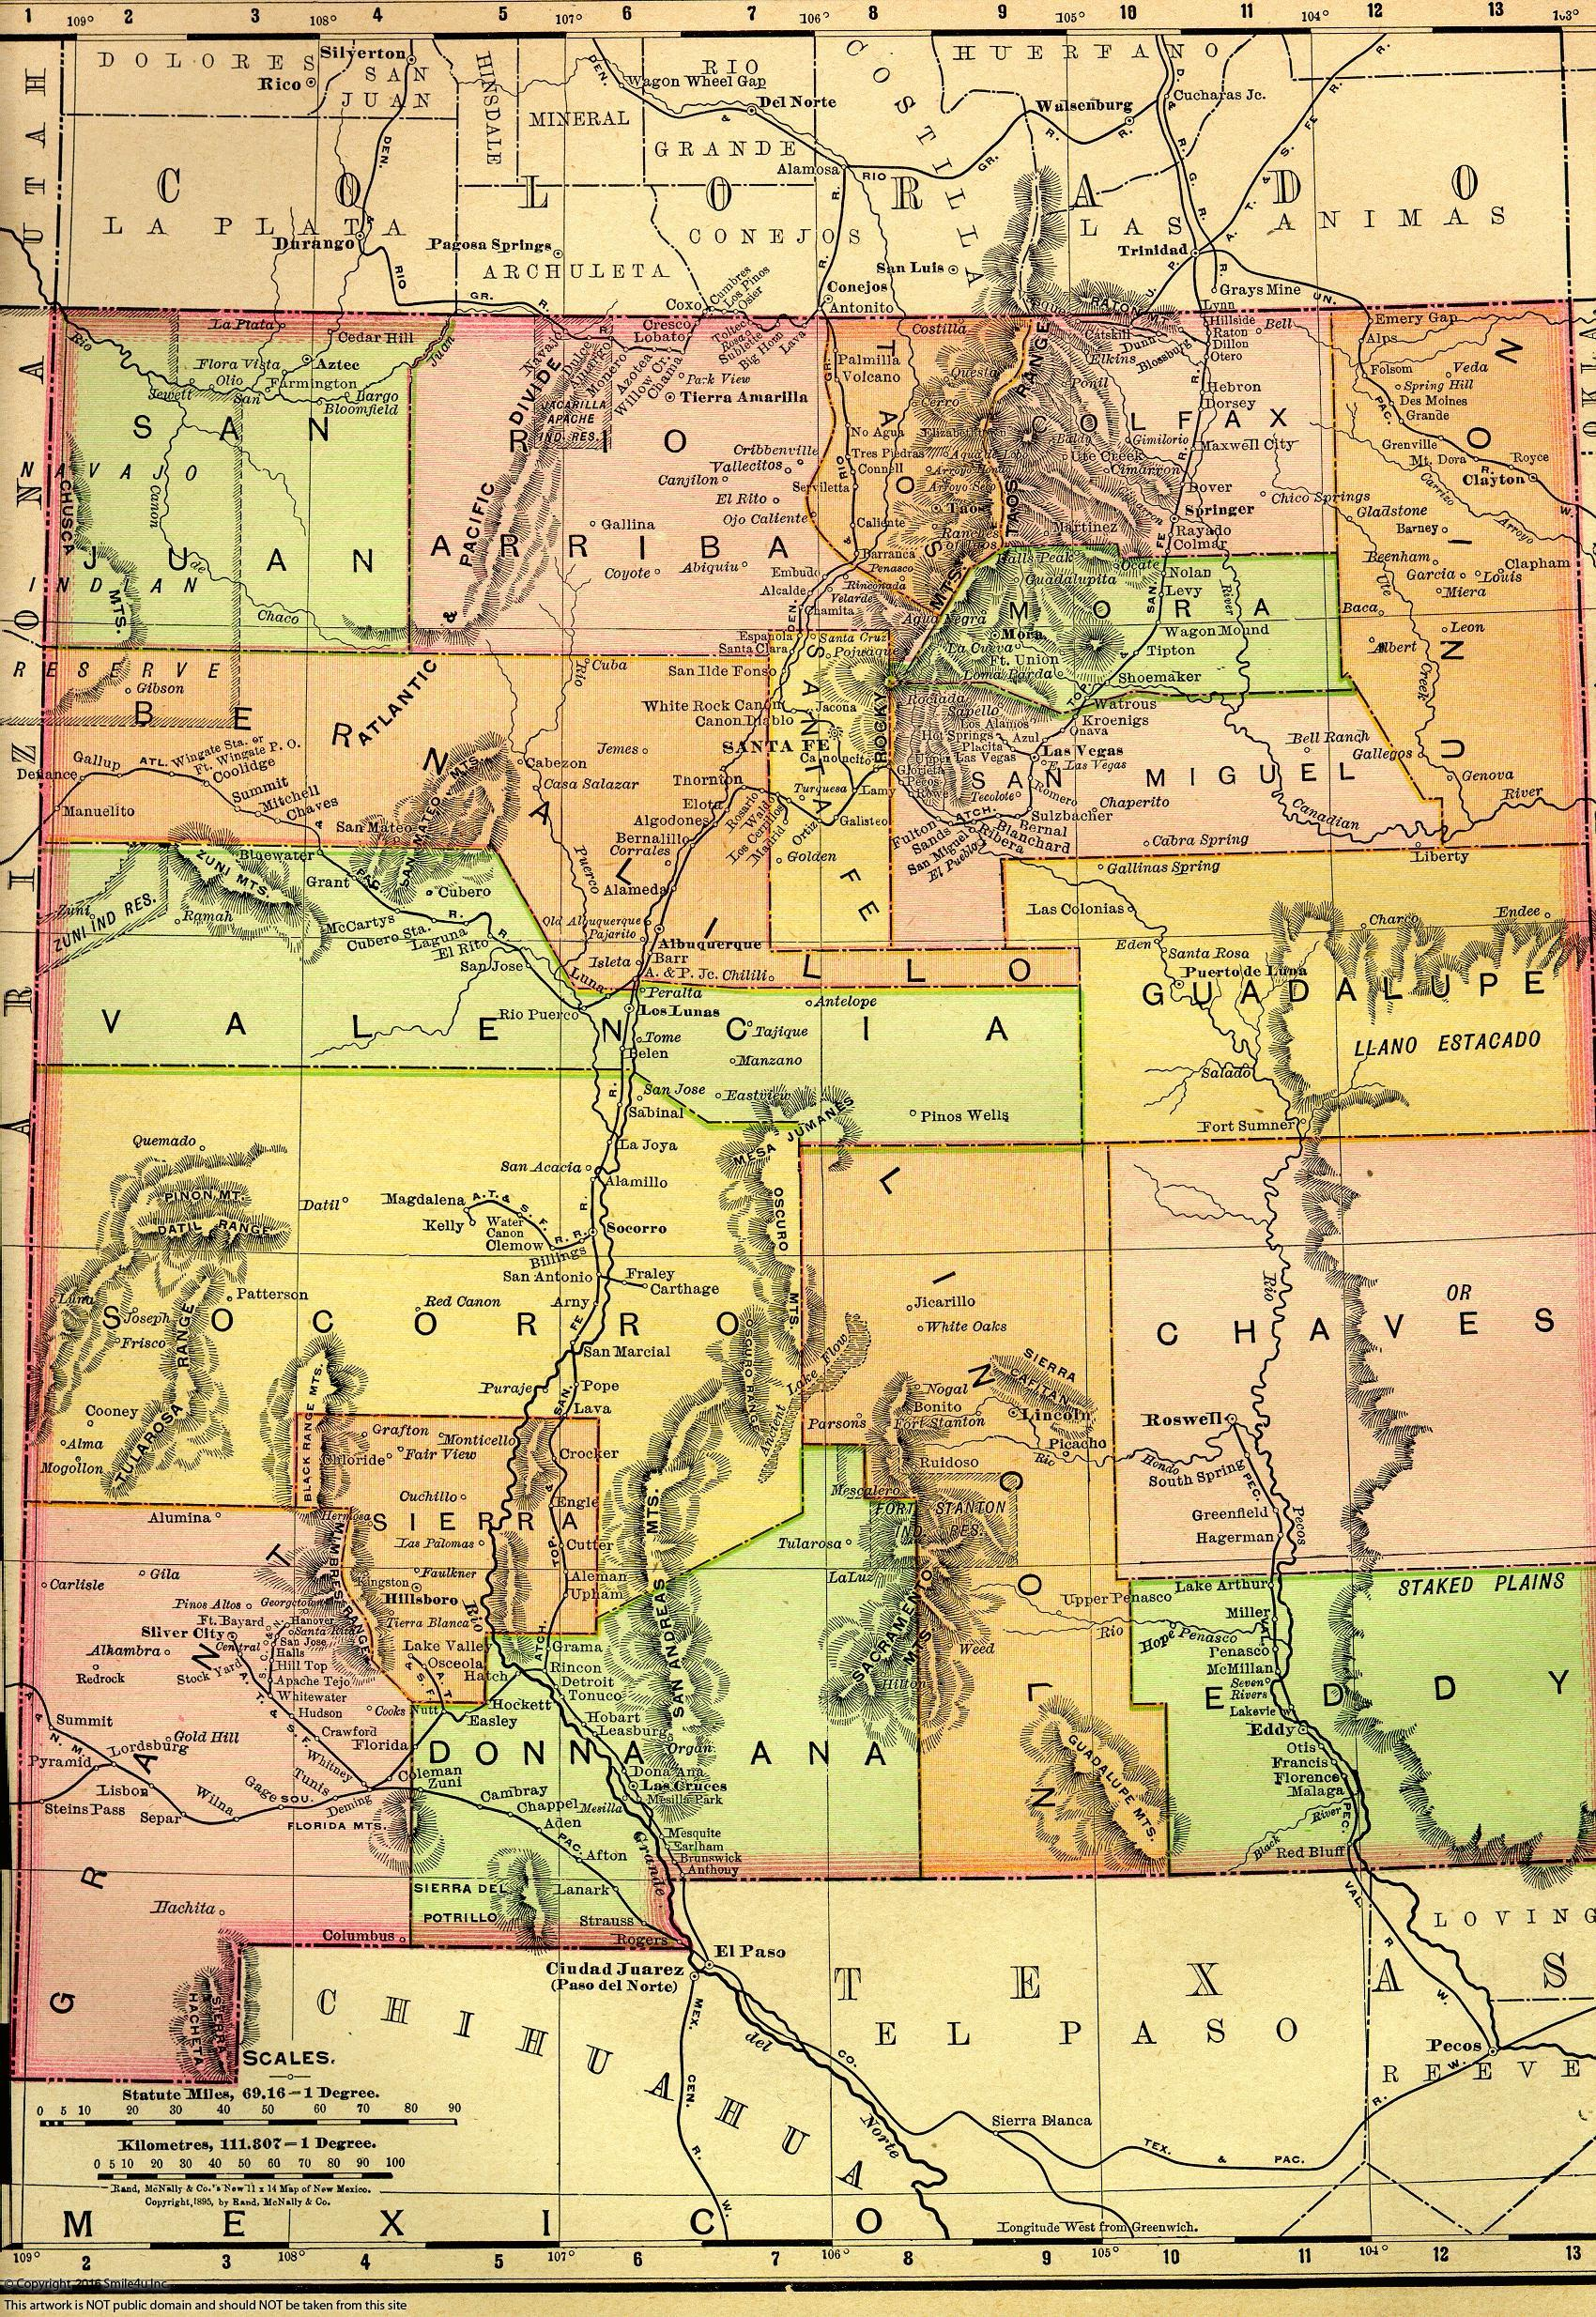 840801_watermarked_New Mexico State Map in 1895.jpg